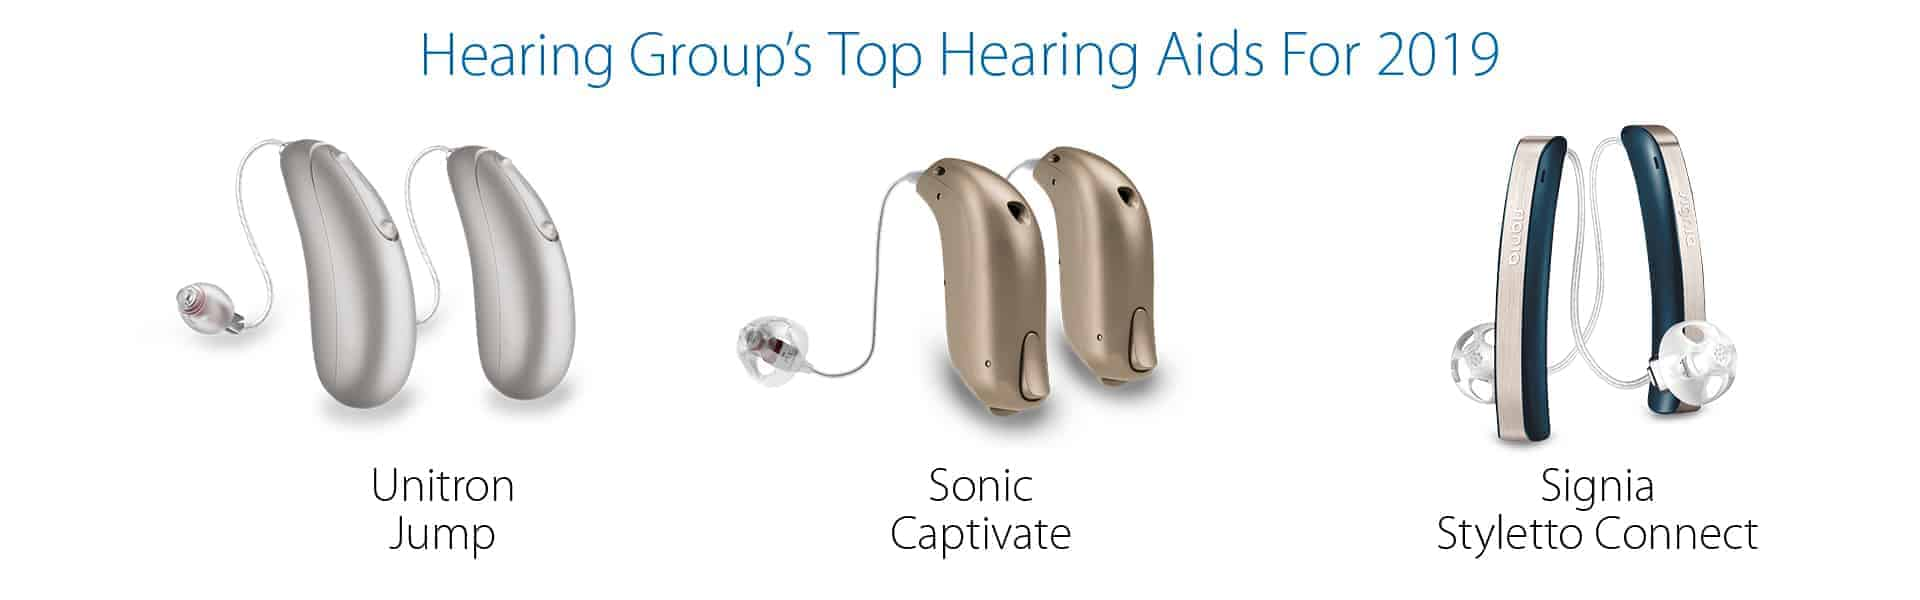 Hearing Groups Top Hearing Aids For 2019